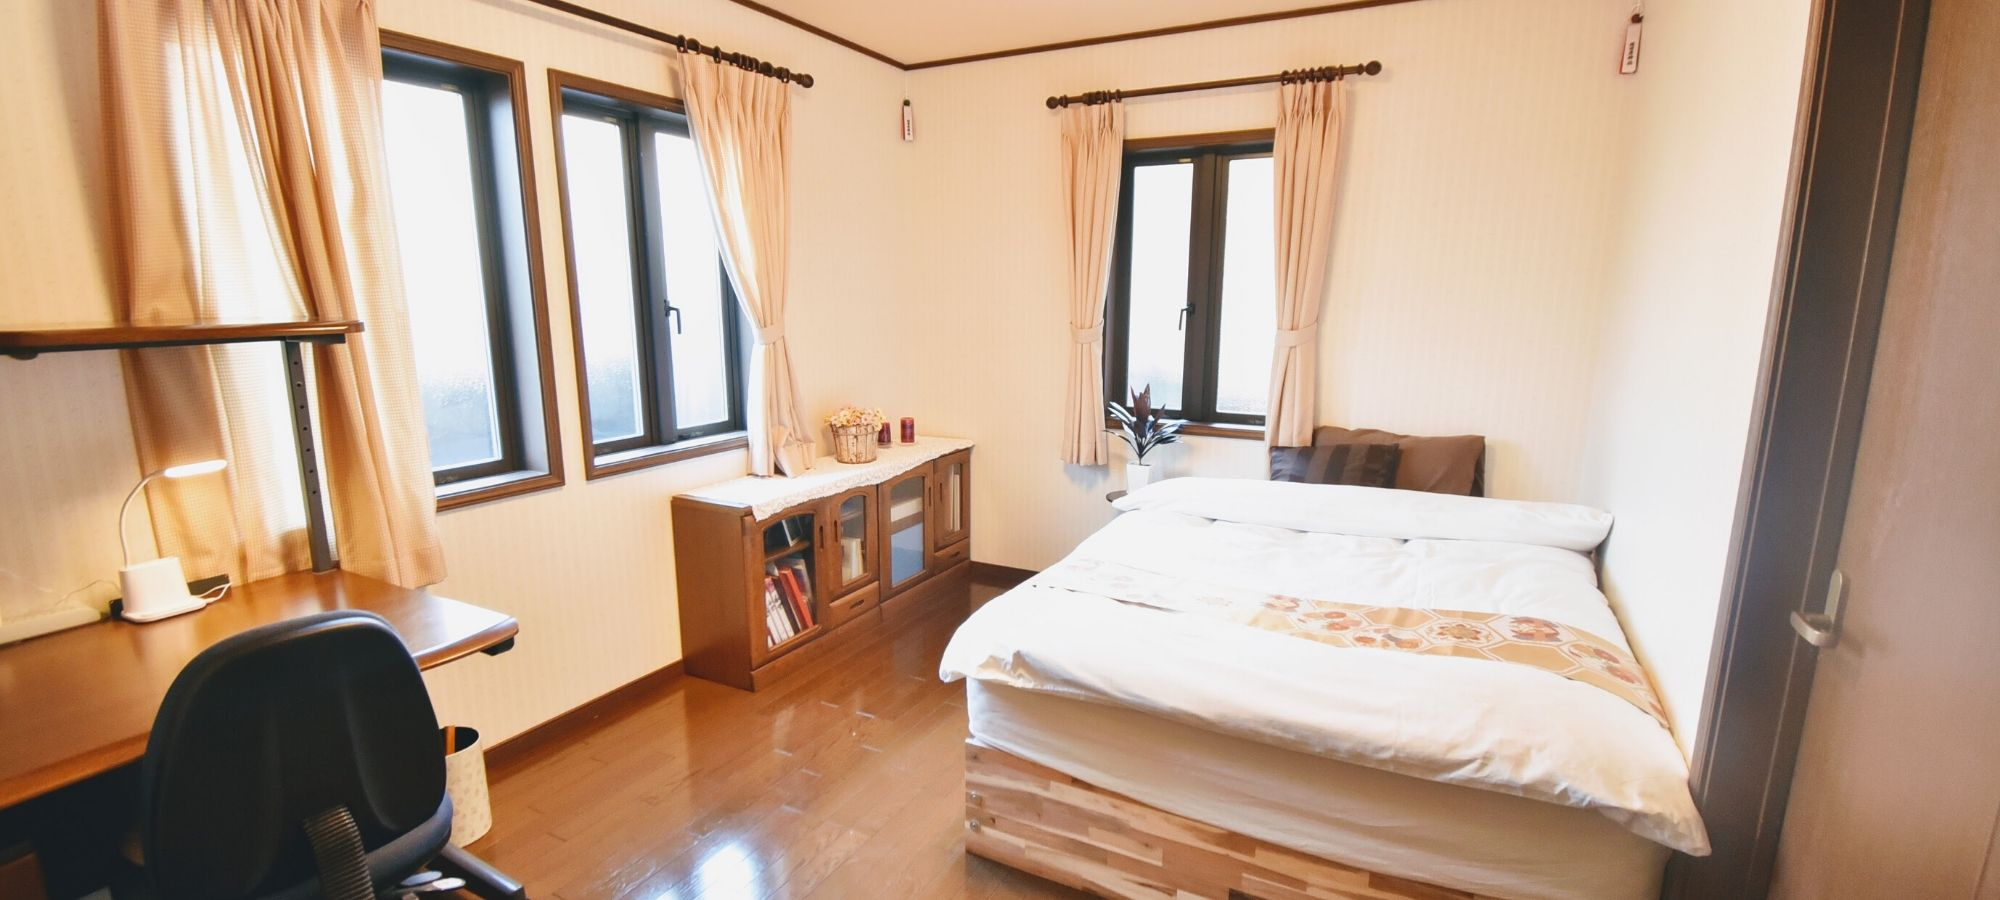 Apartment for rent in Japan in a nutshell